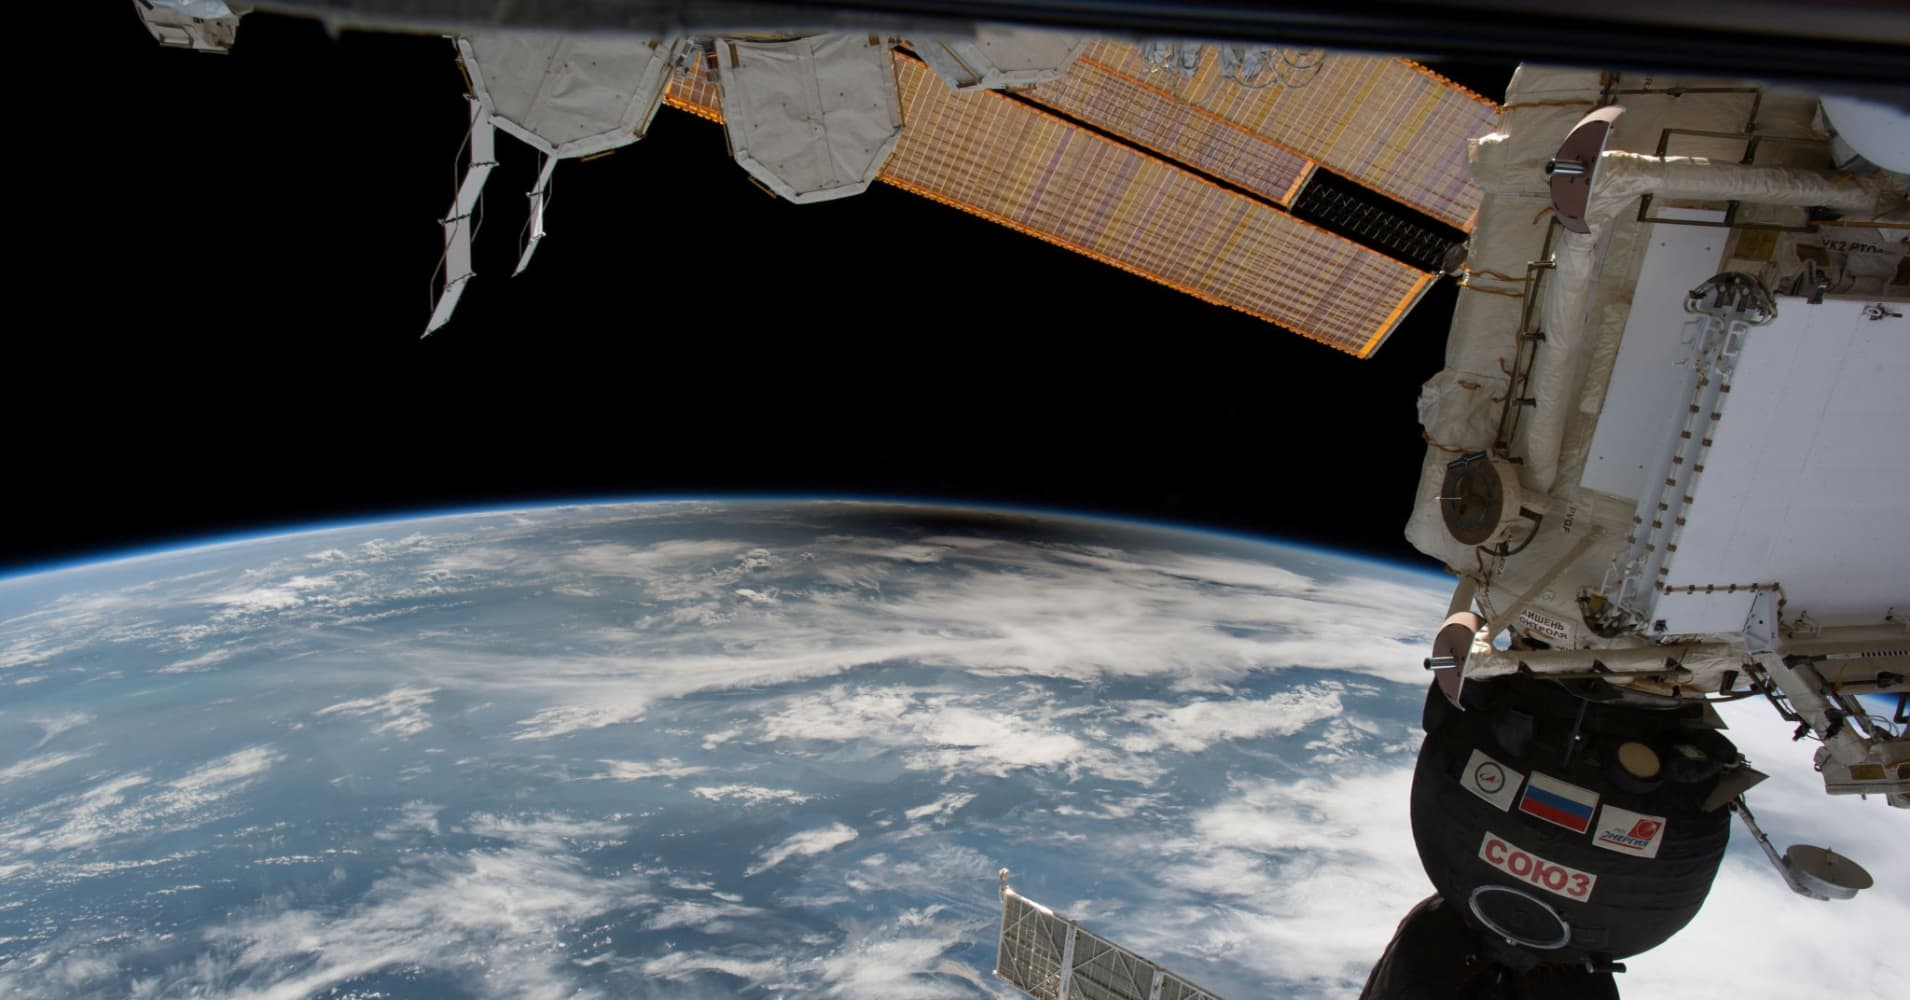 Graduates of SpaceX, NASA and Stanford are building an internet in space